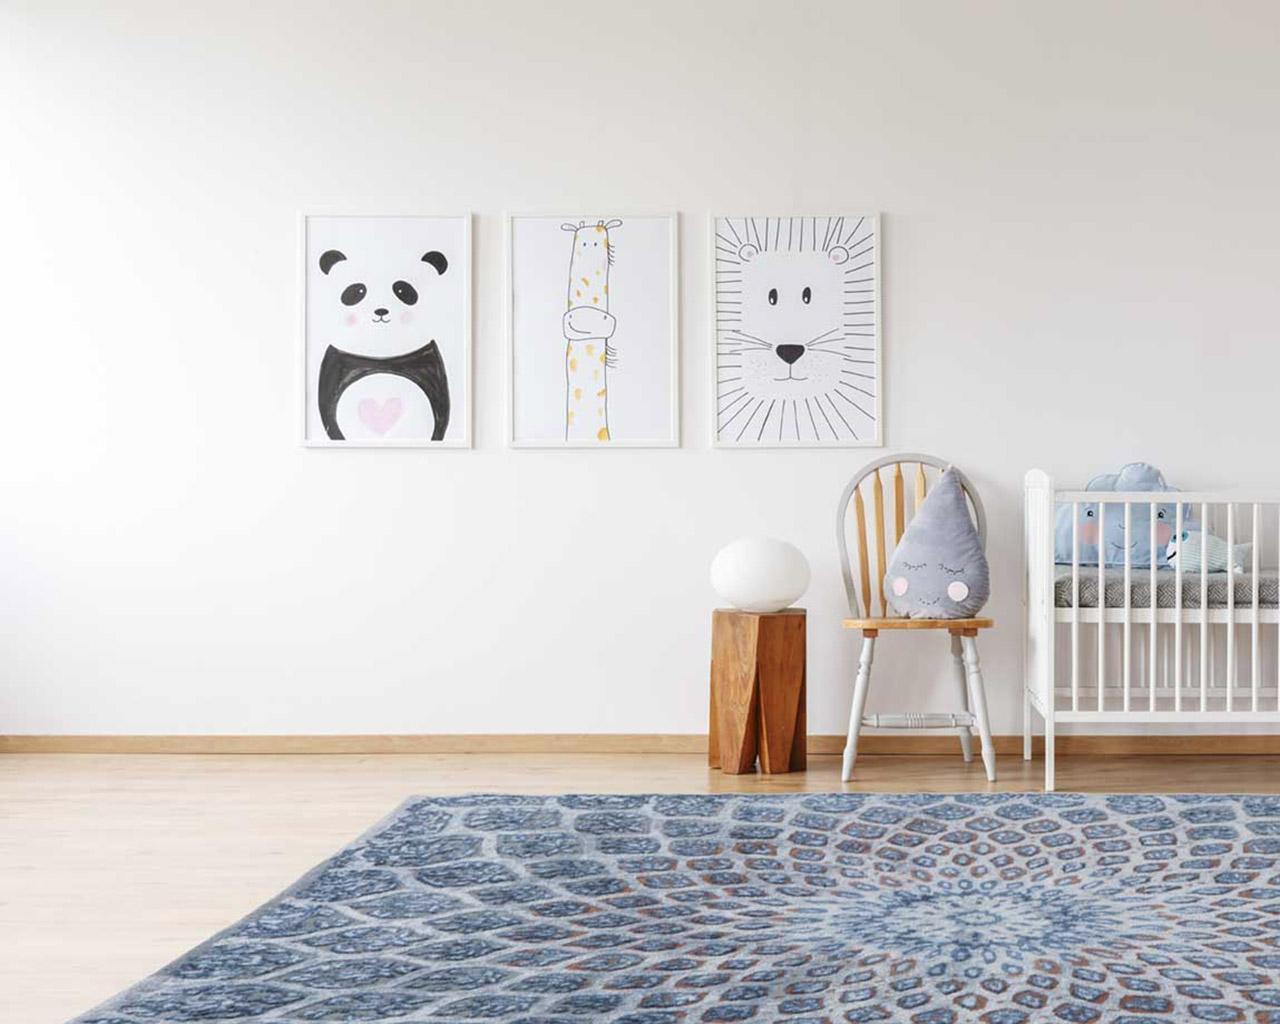 buy natural material rugs kids room